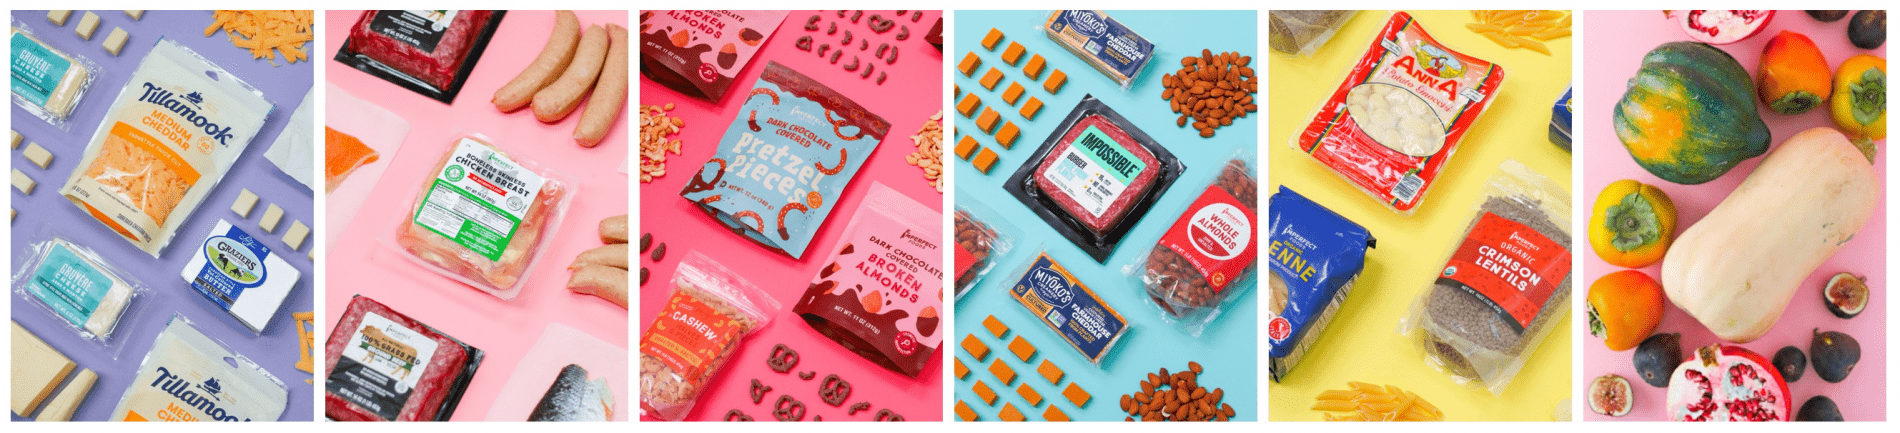 Imperfect Foods – Save 20% Off Your First 4 Boxes!